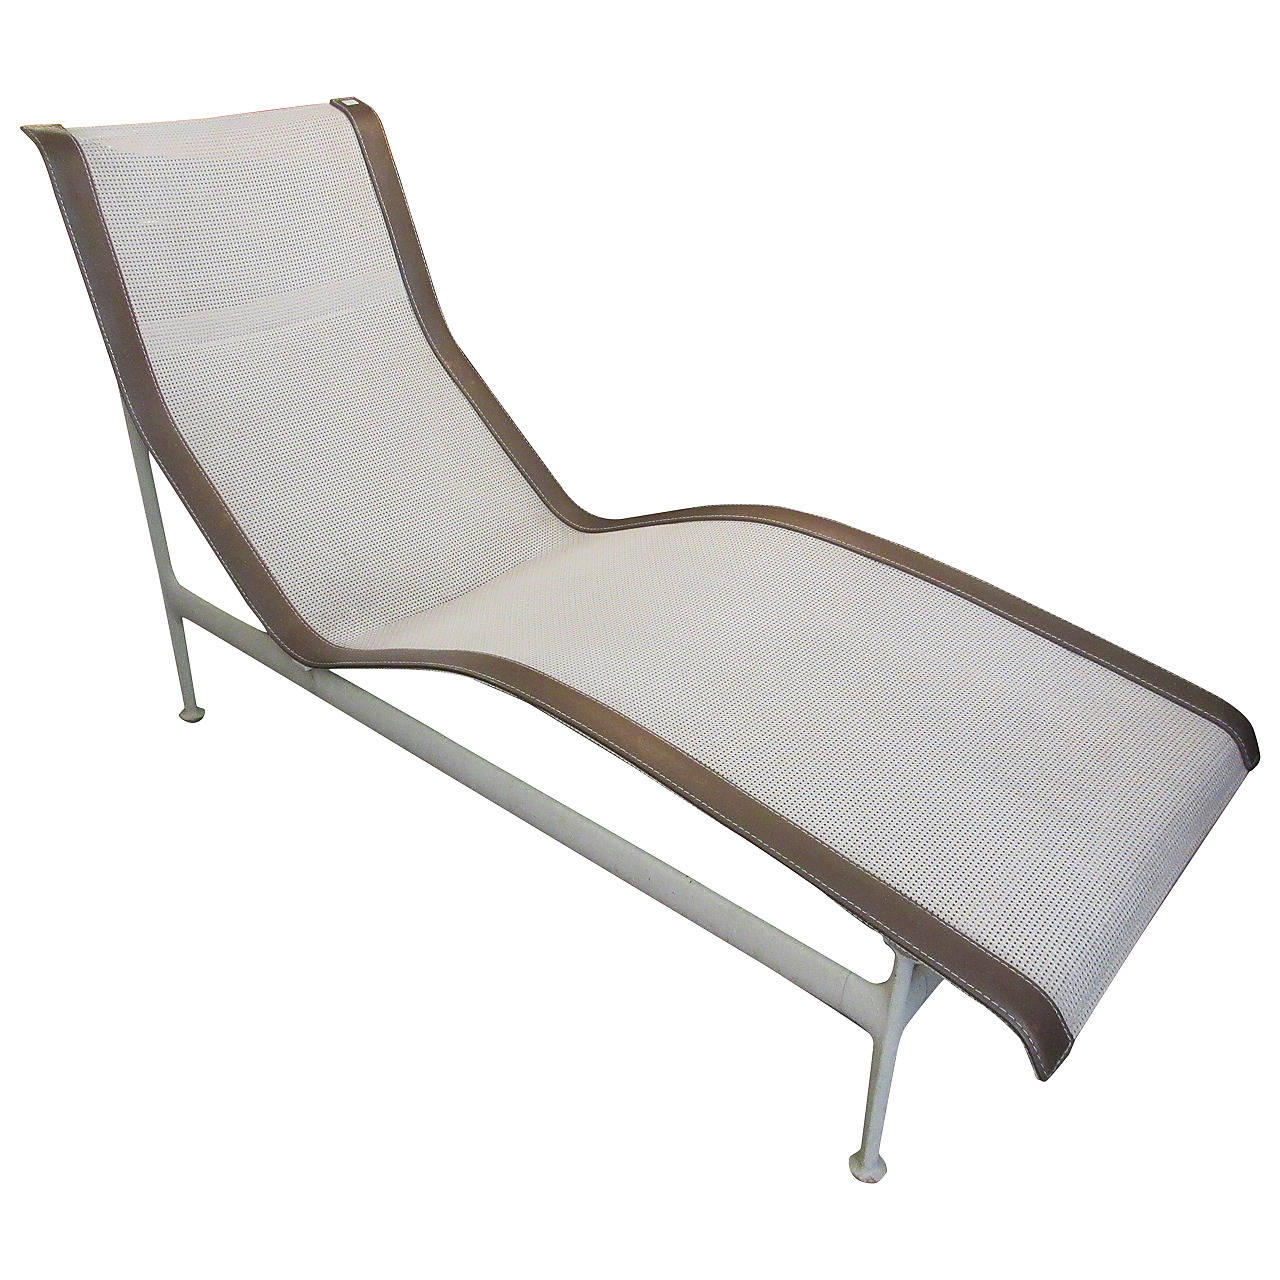 richard schultz outdoor chaise longue for knoll at 1stdibs. Black Bedroom Furniture Sets. Home Design Ideas